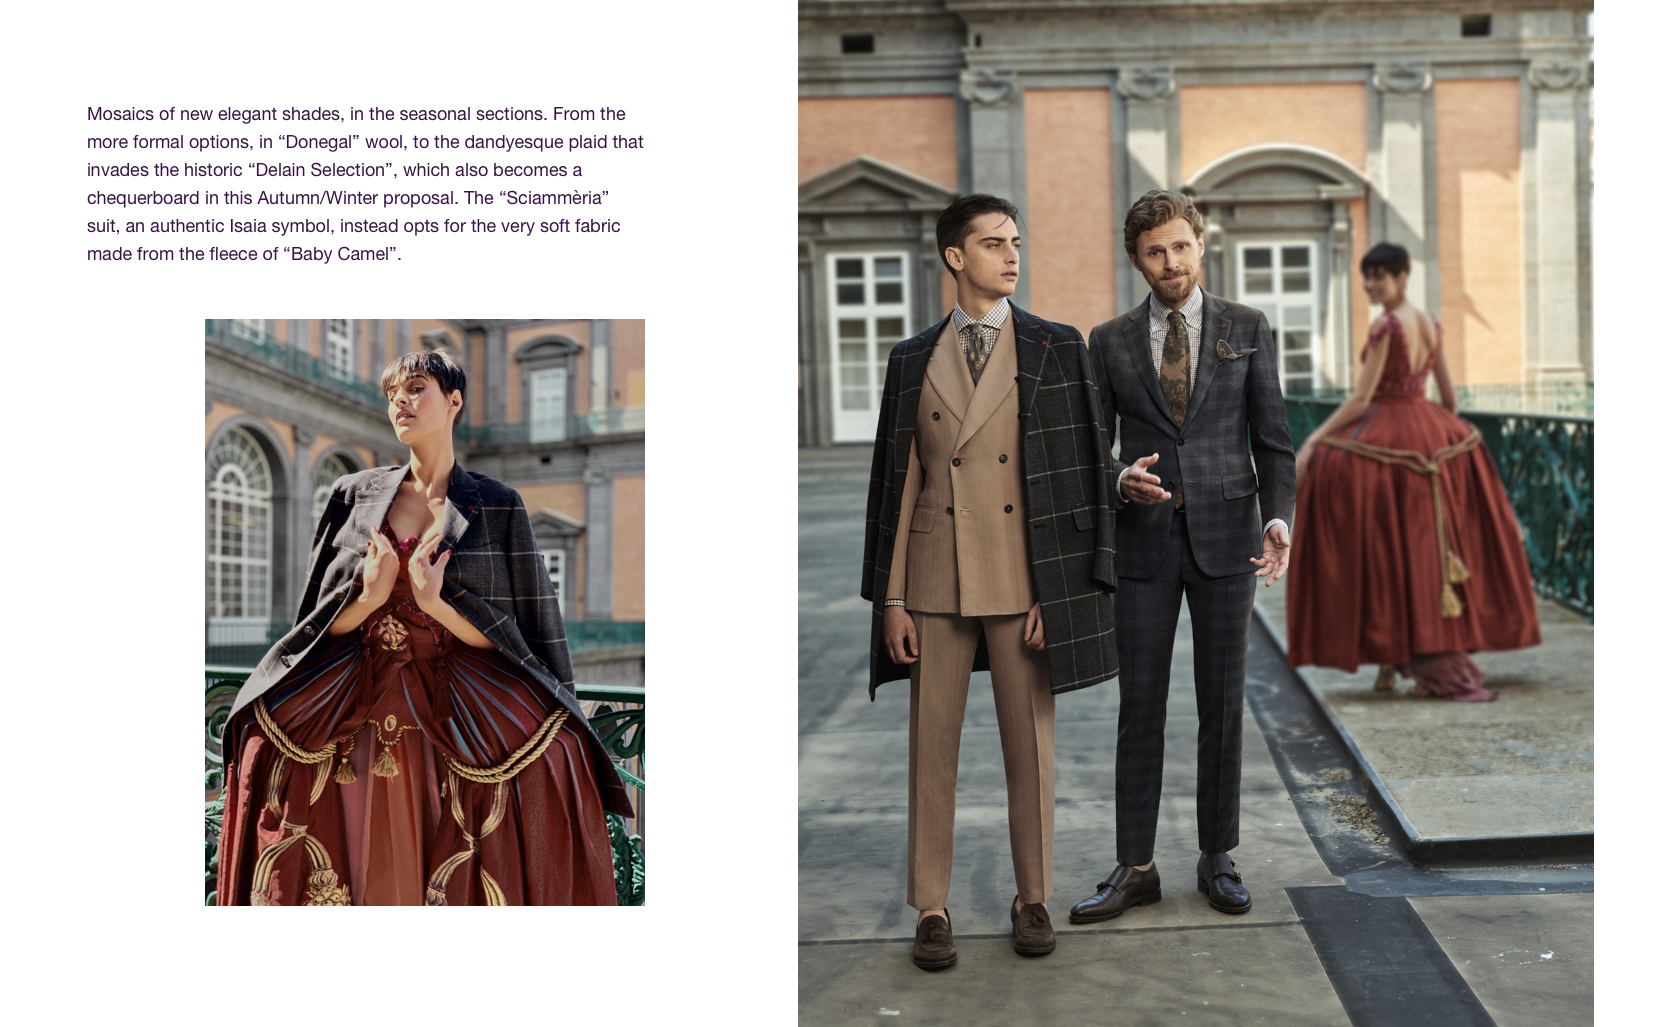 Mosaics of new elegant shades, in the seasonal sections. From the more formal options, in Denogal wool, to the dandyesue plaid that invades the historic Delain Selection, which also becomes a chequerboard in this Autumn/Winter proposal. The Sciammeria suit, an authentic Isaia symbol, instead opts for the very soft fabric made from the fleece of Baby Camel. title=